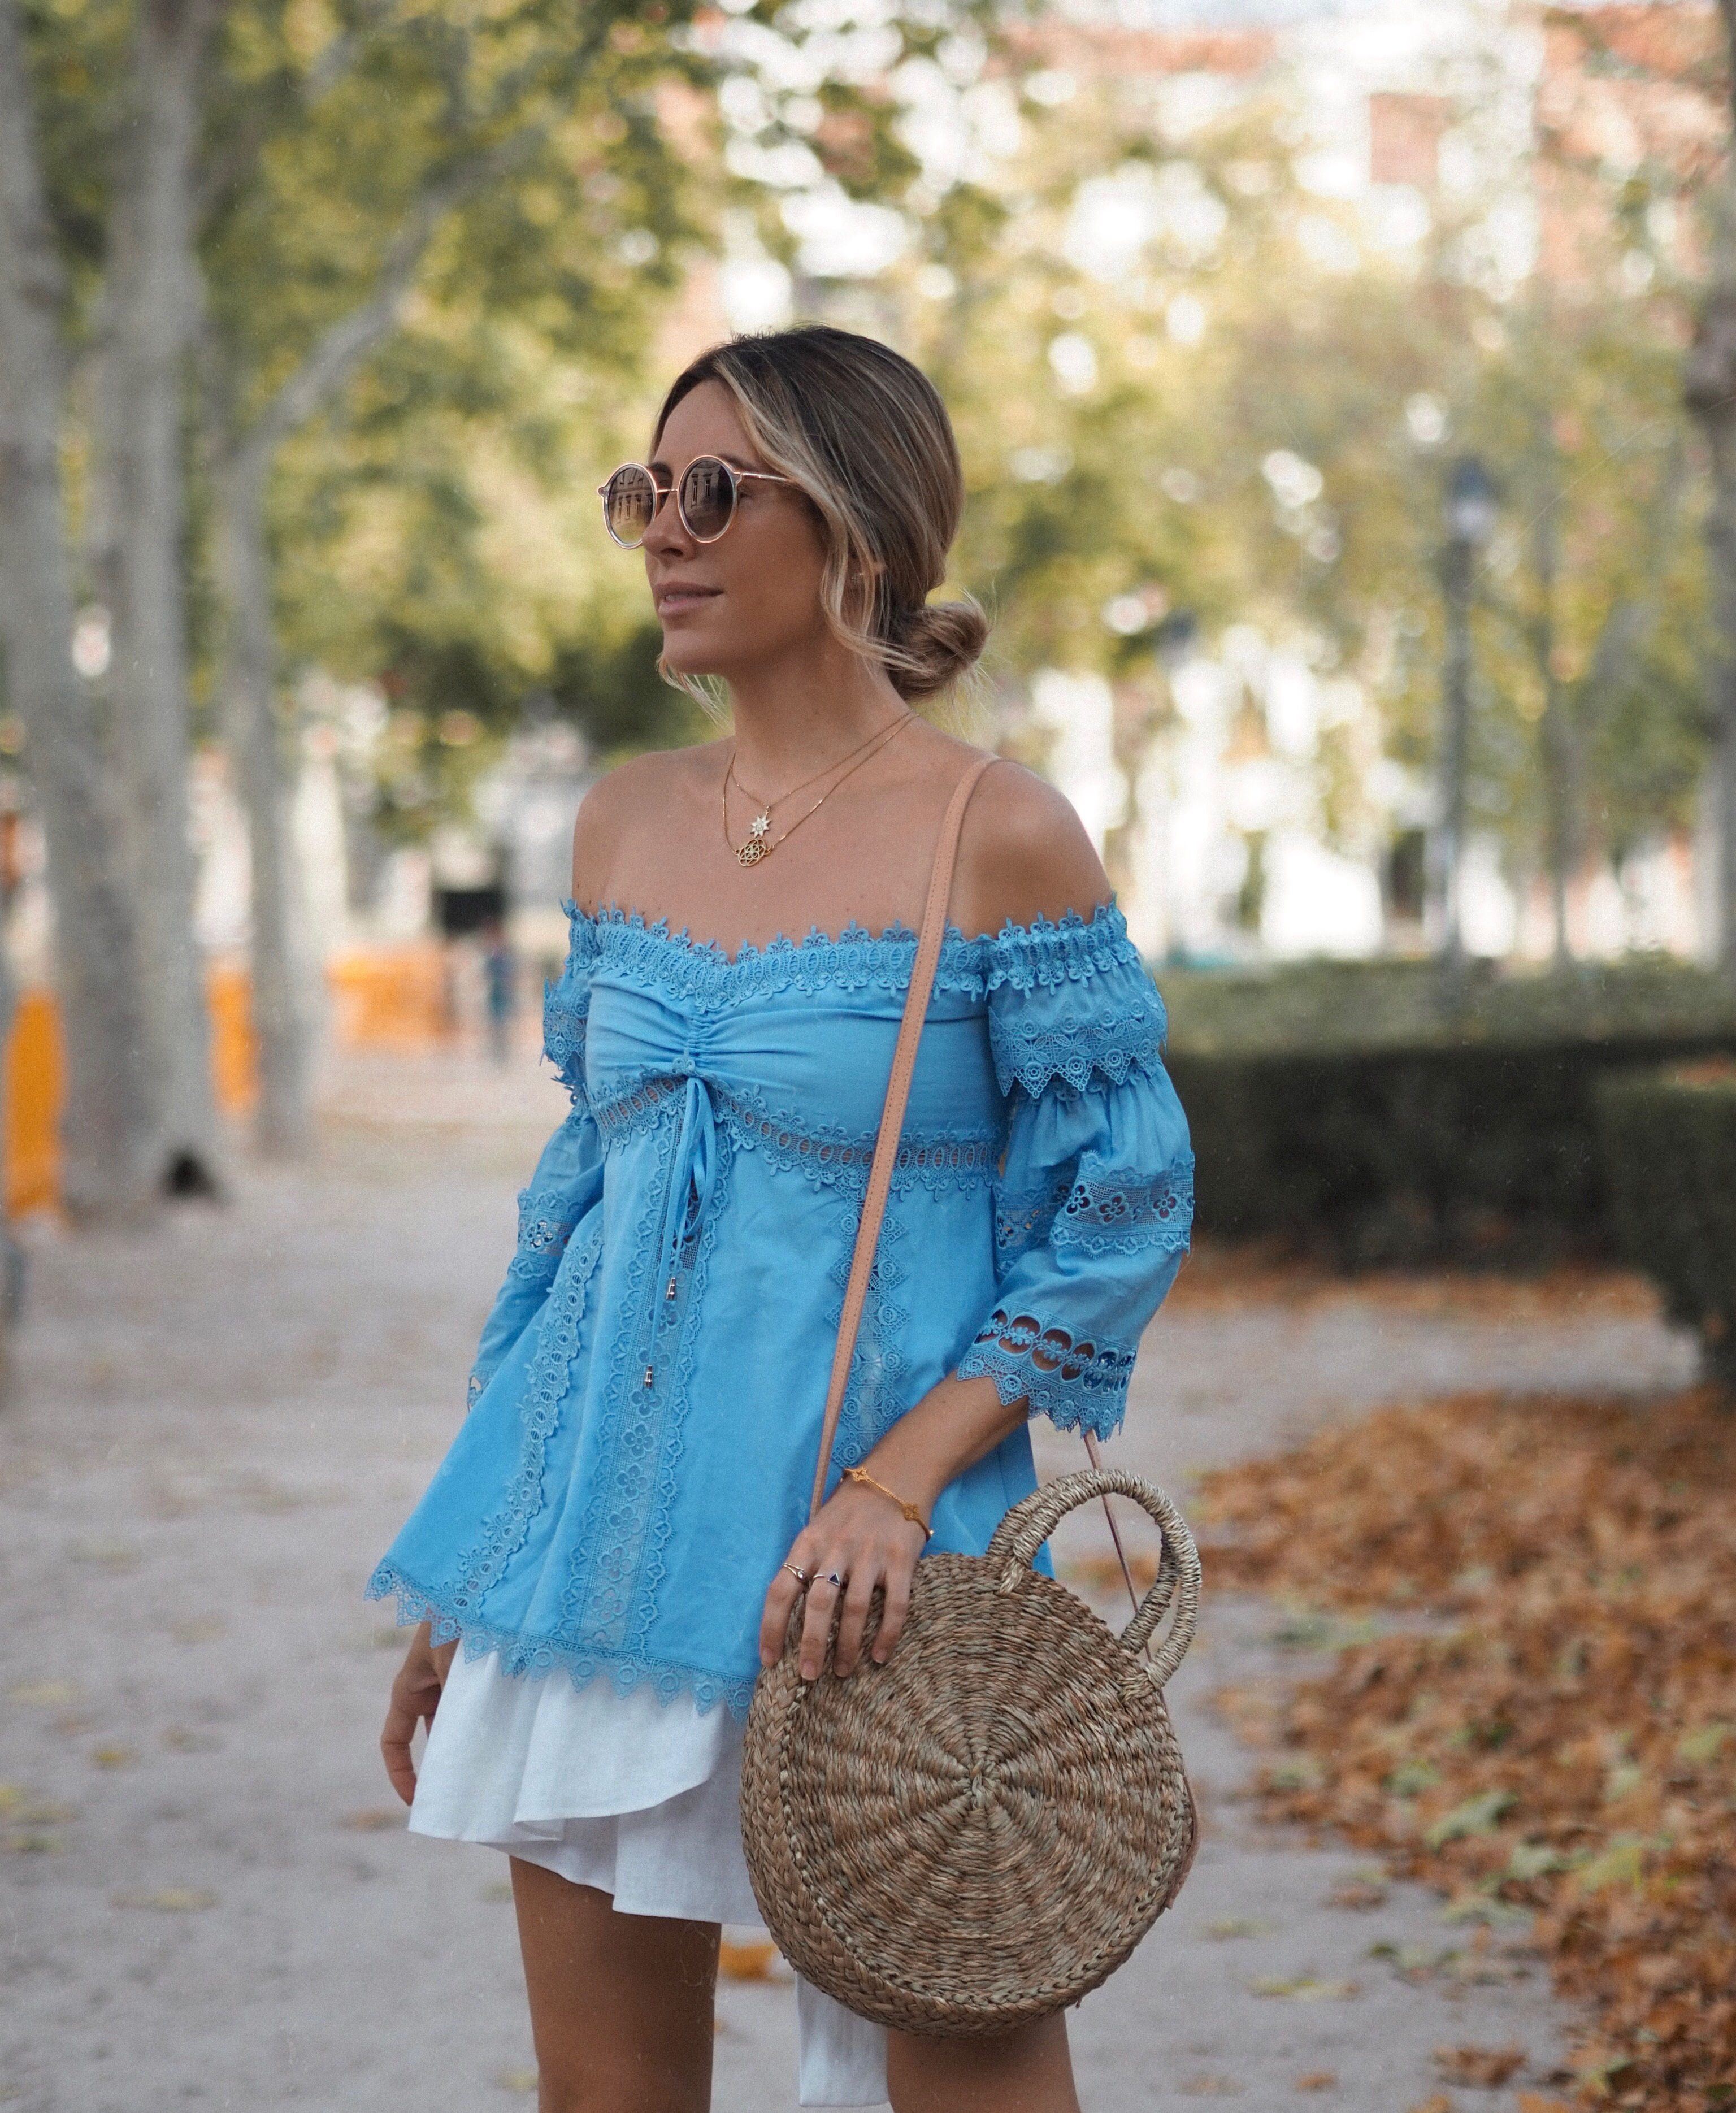 Off the shoulder top and messy bun